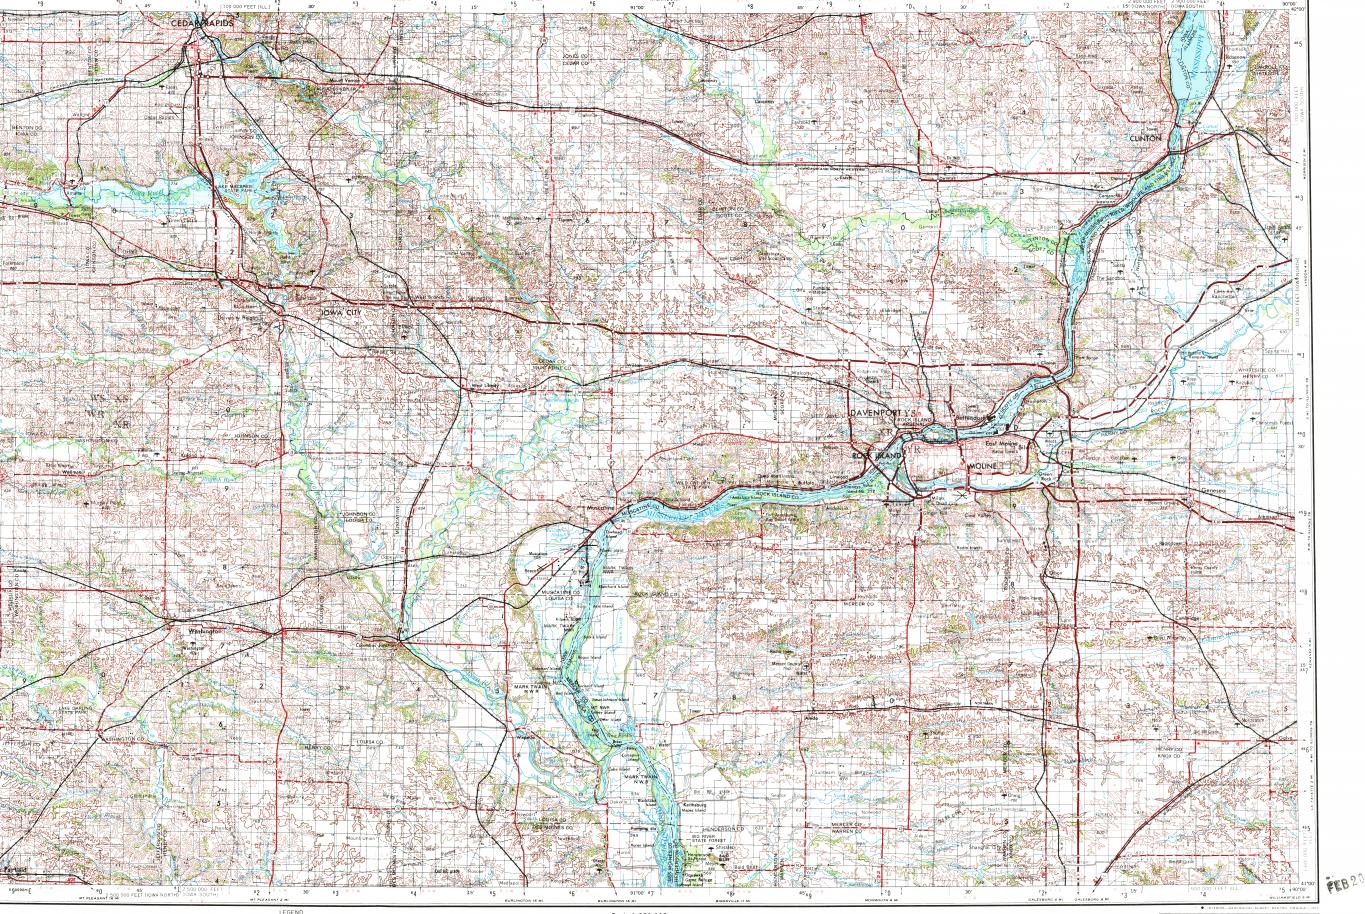 Download topographic map in area of Davenport Cedar Rapids Iowa